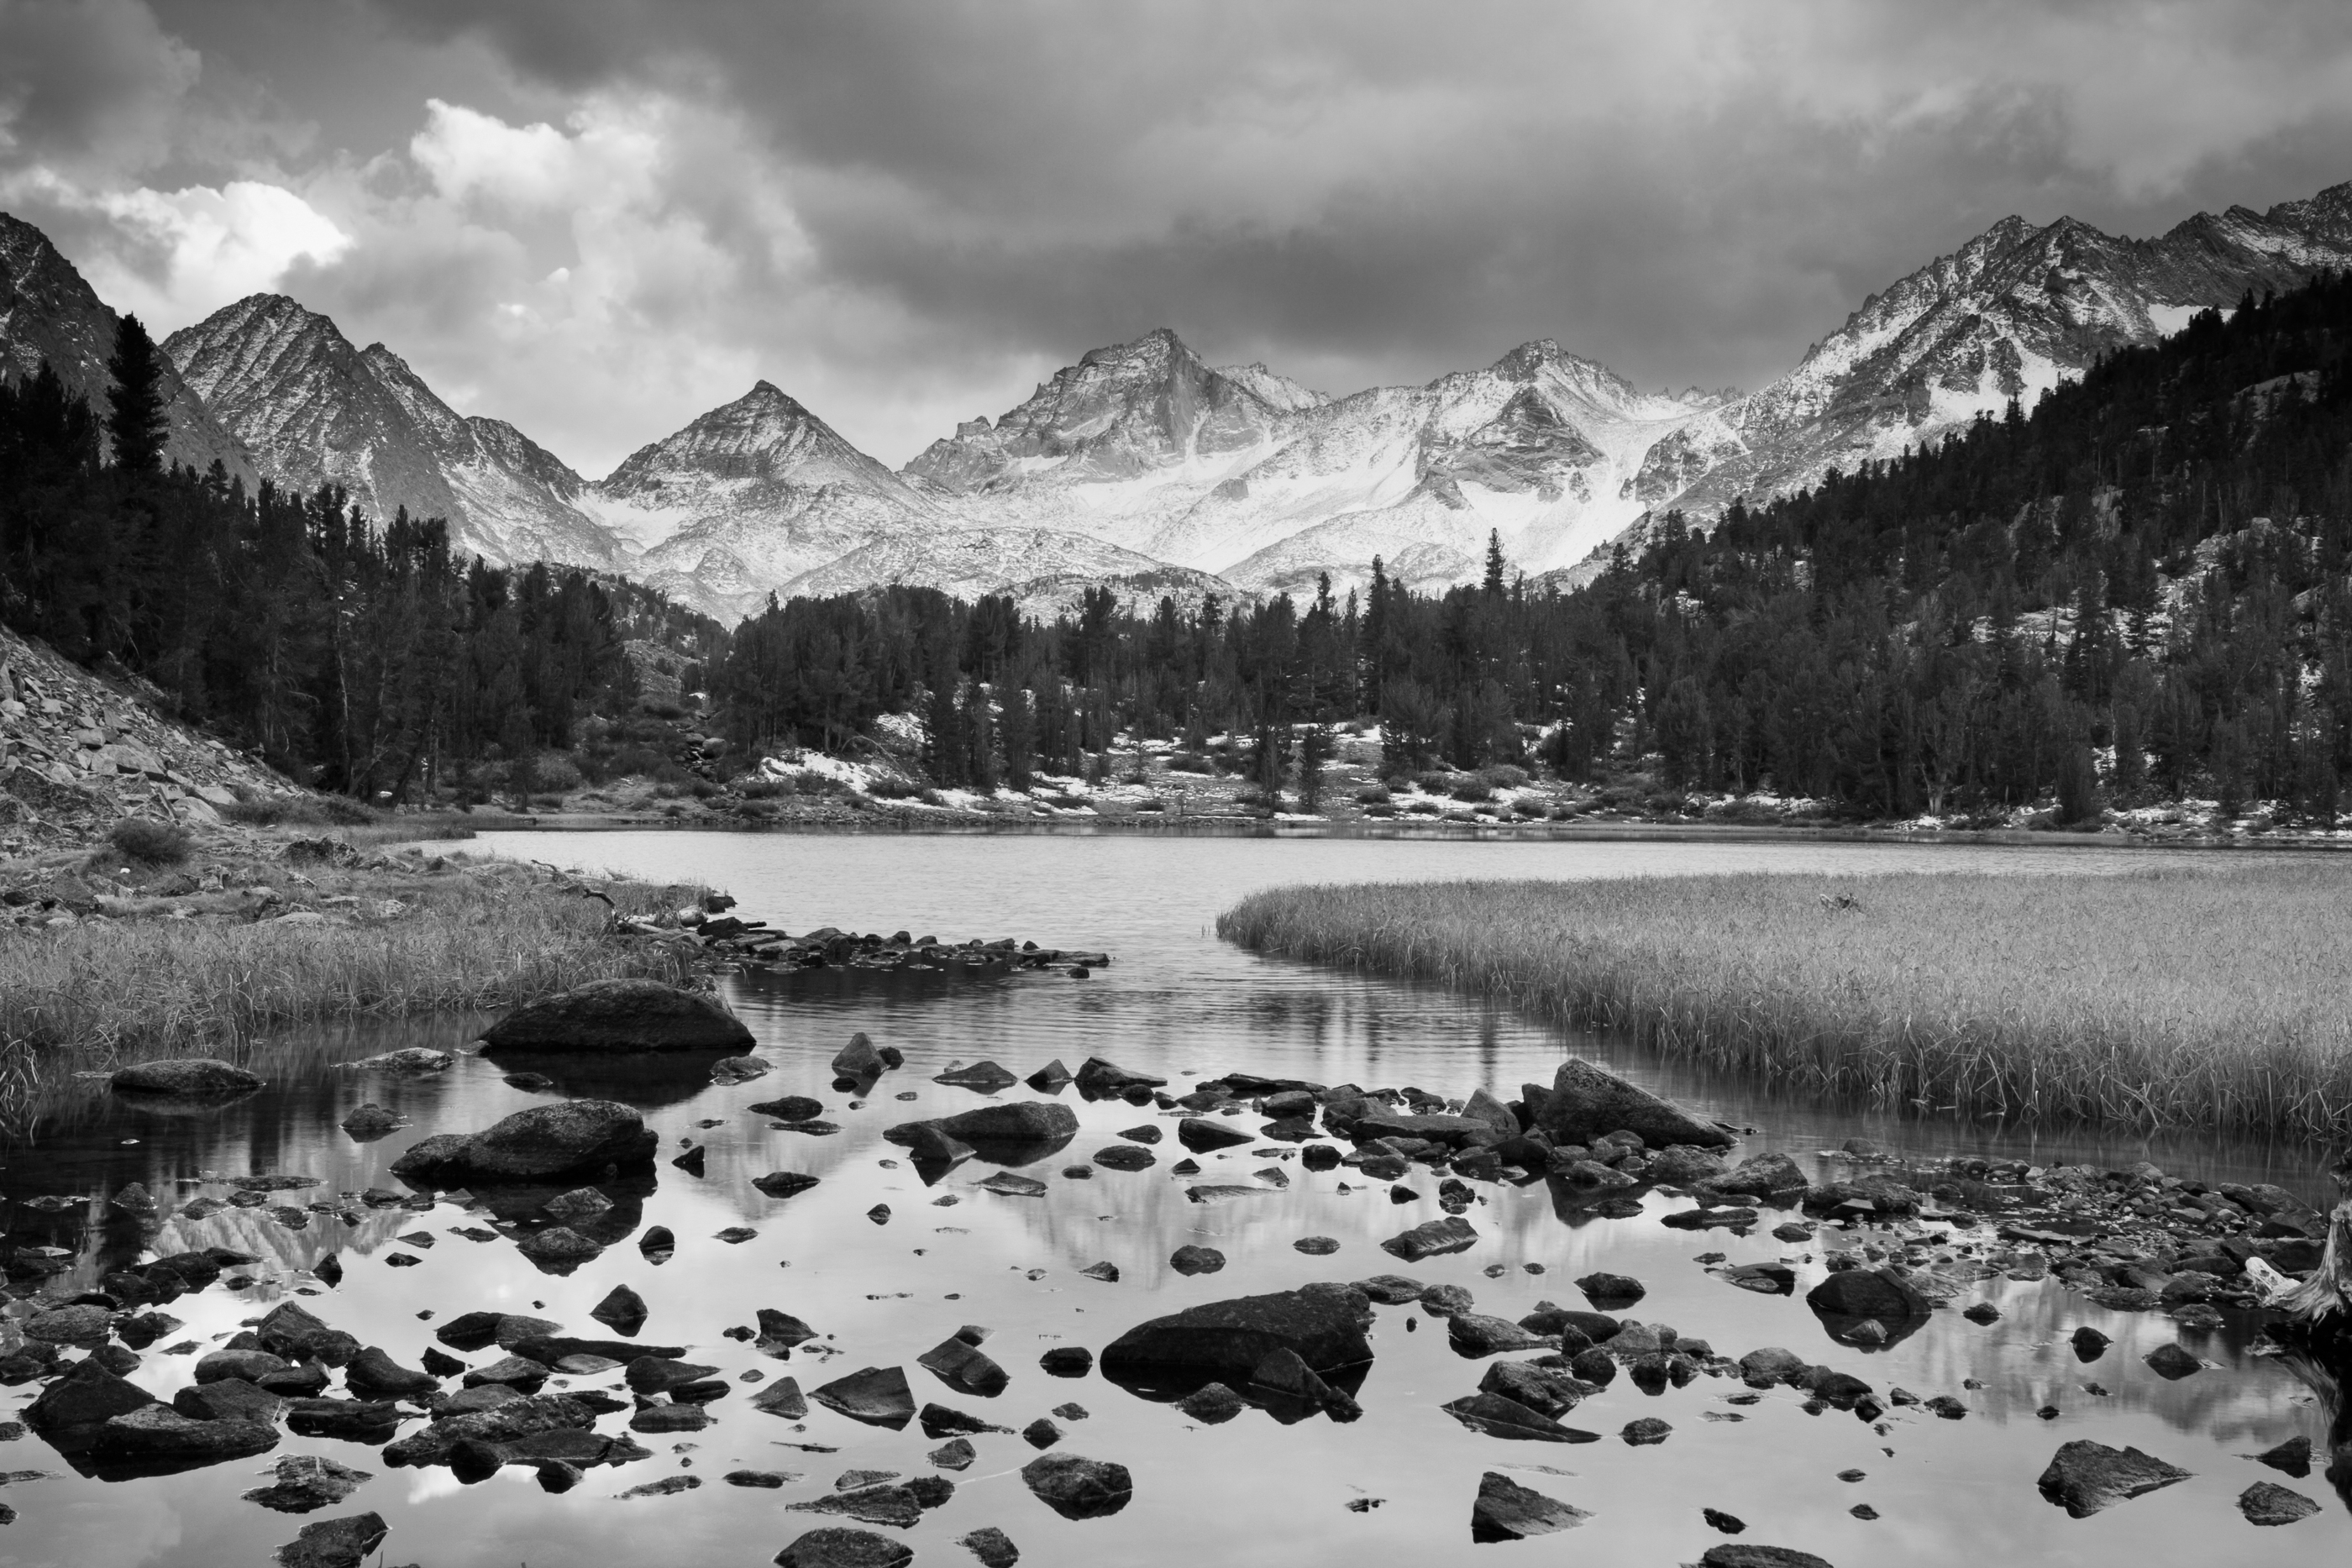 5 great tips for creating amazing black and white photos